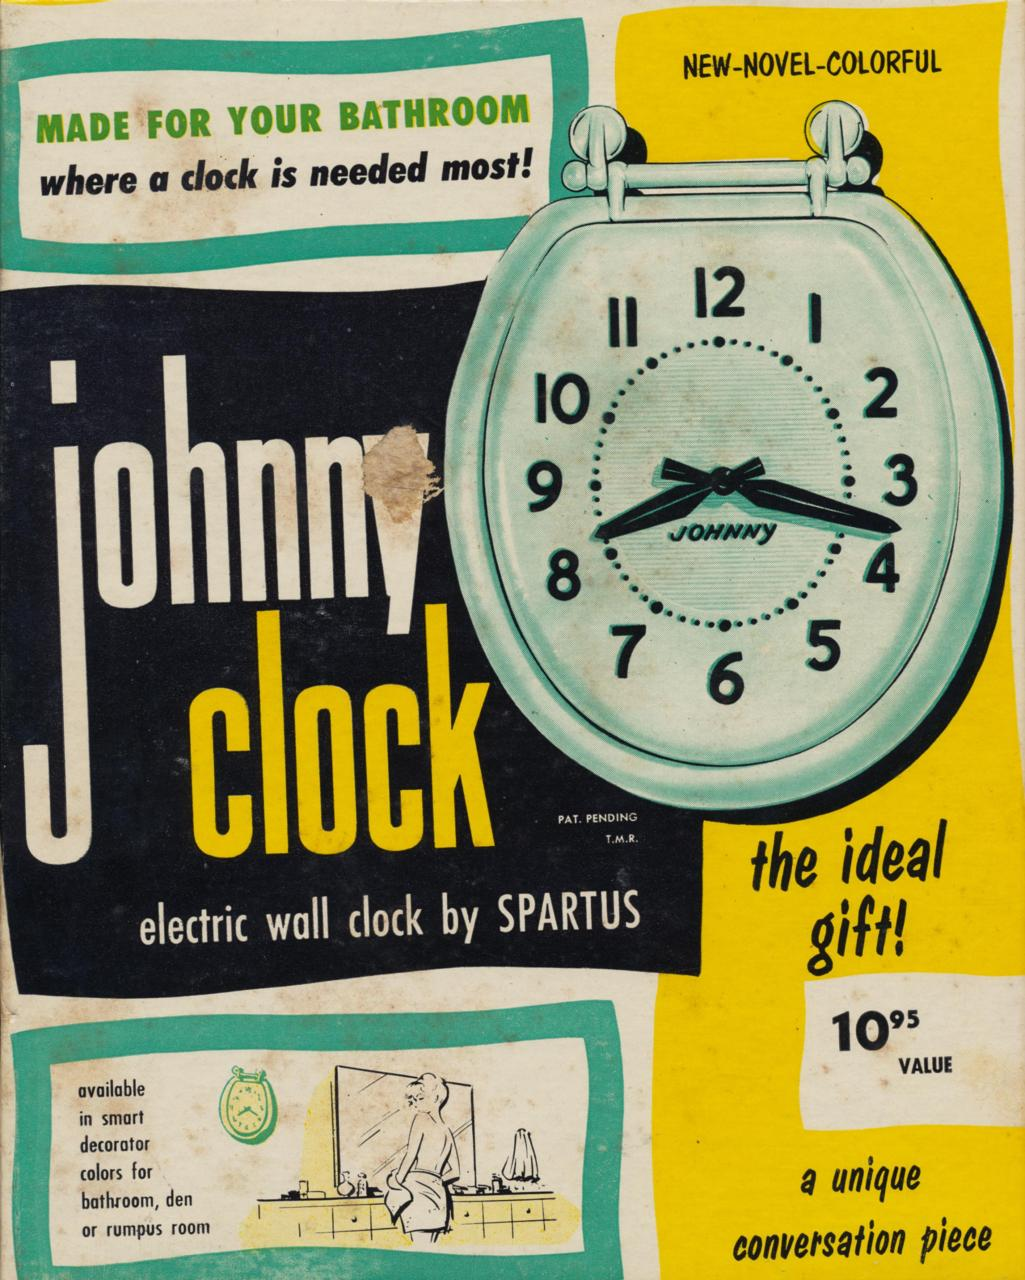 Toilet Clock – the ideal gift